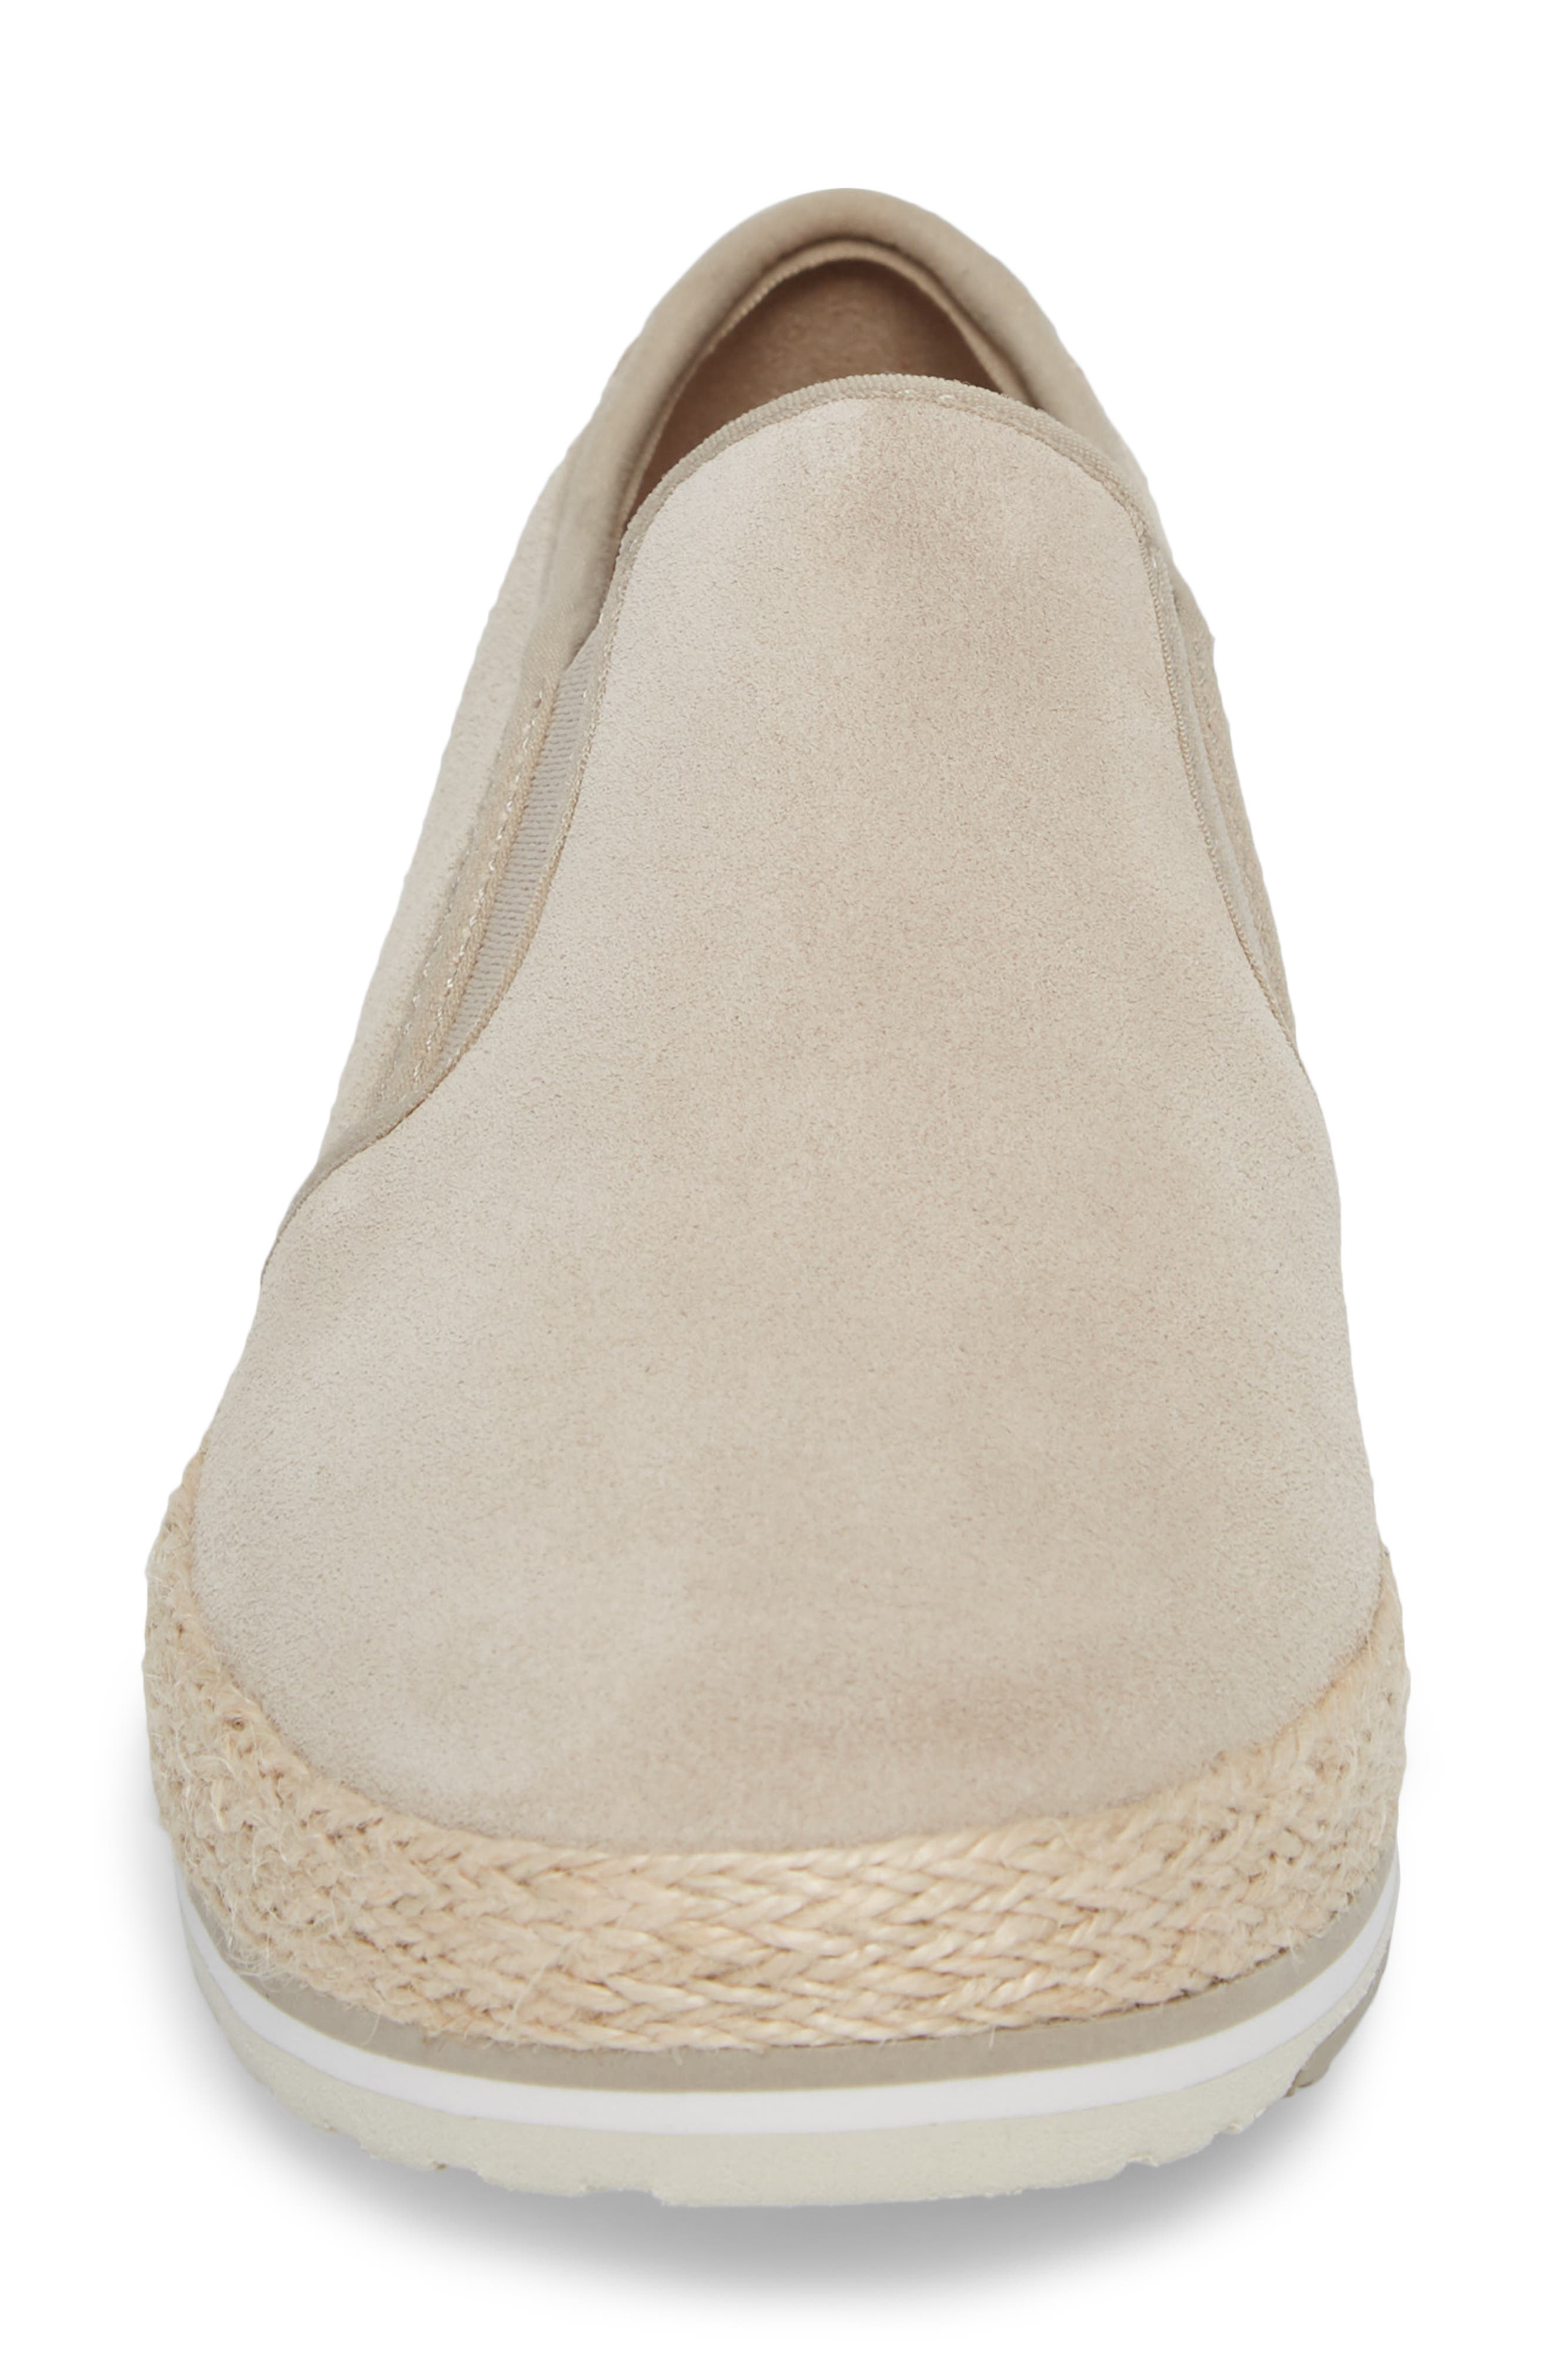 Eivissa Sea Slip-On Sneaker,                             Alternate thumbnail 4, color,                             LIGHT BEIGE LEATHER